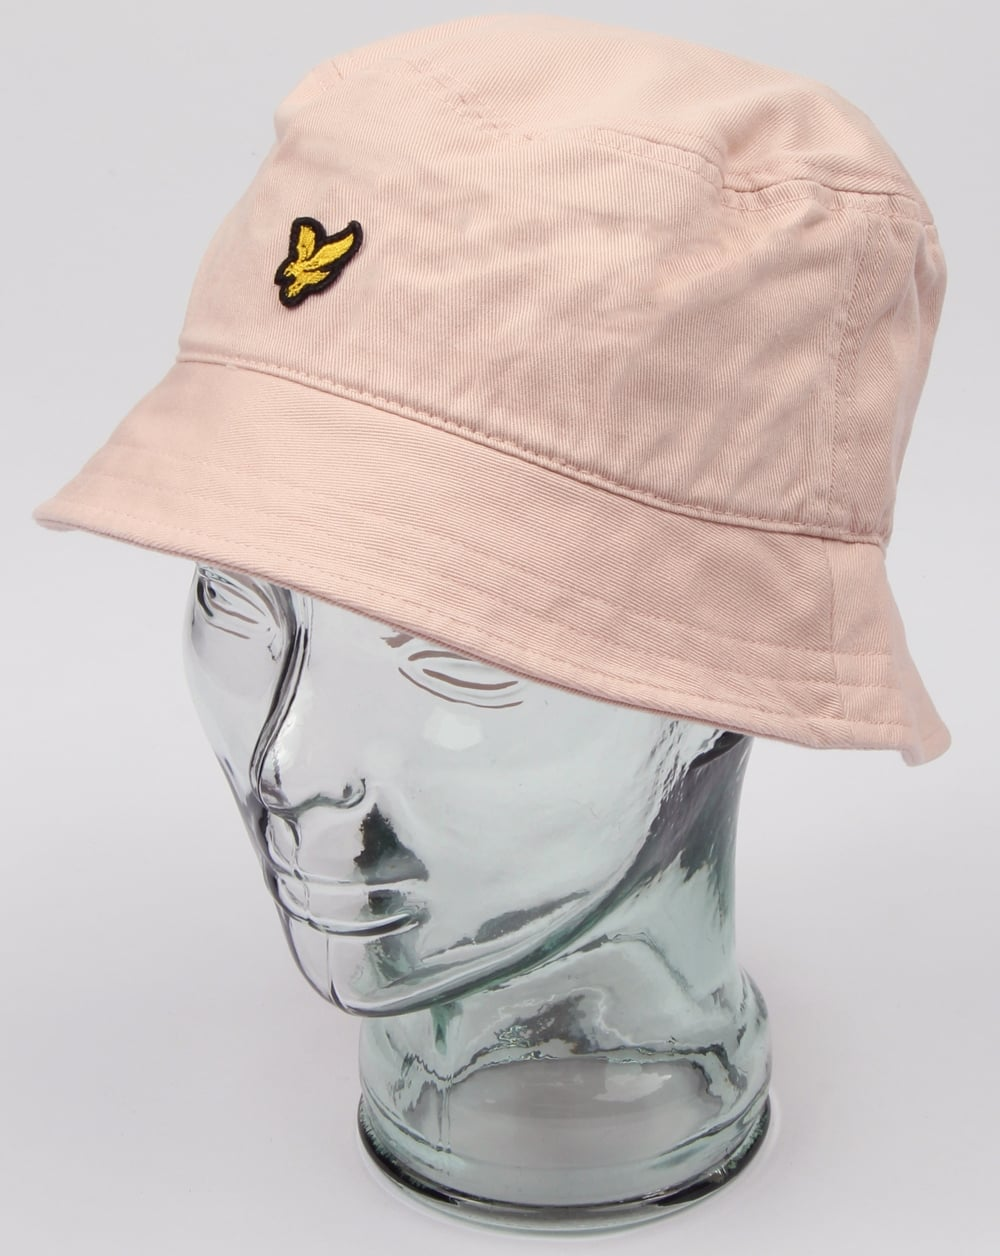 da128feaf78 Lyle and Scott Lyle And Scott Bucket Hat Dusty Pink